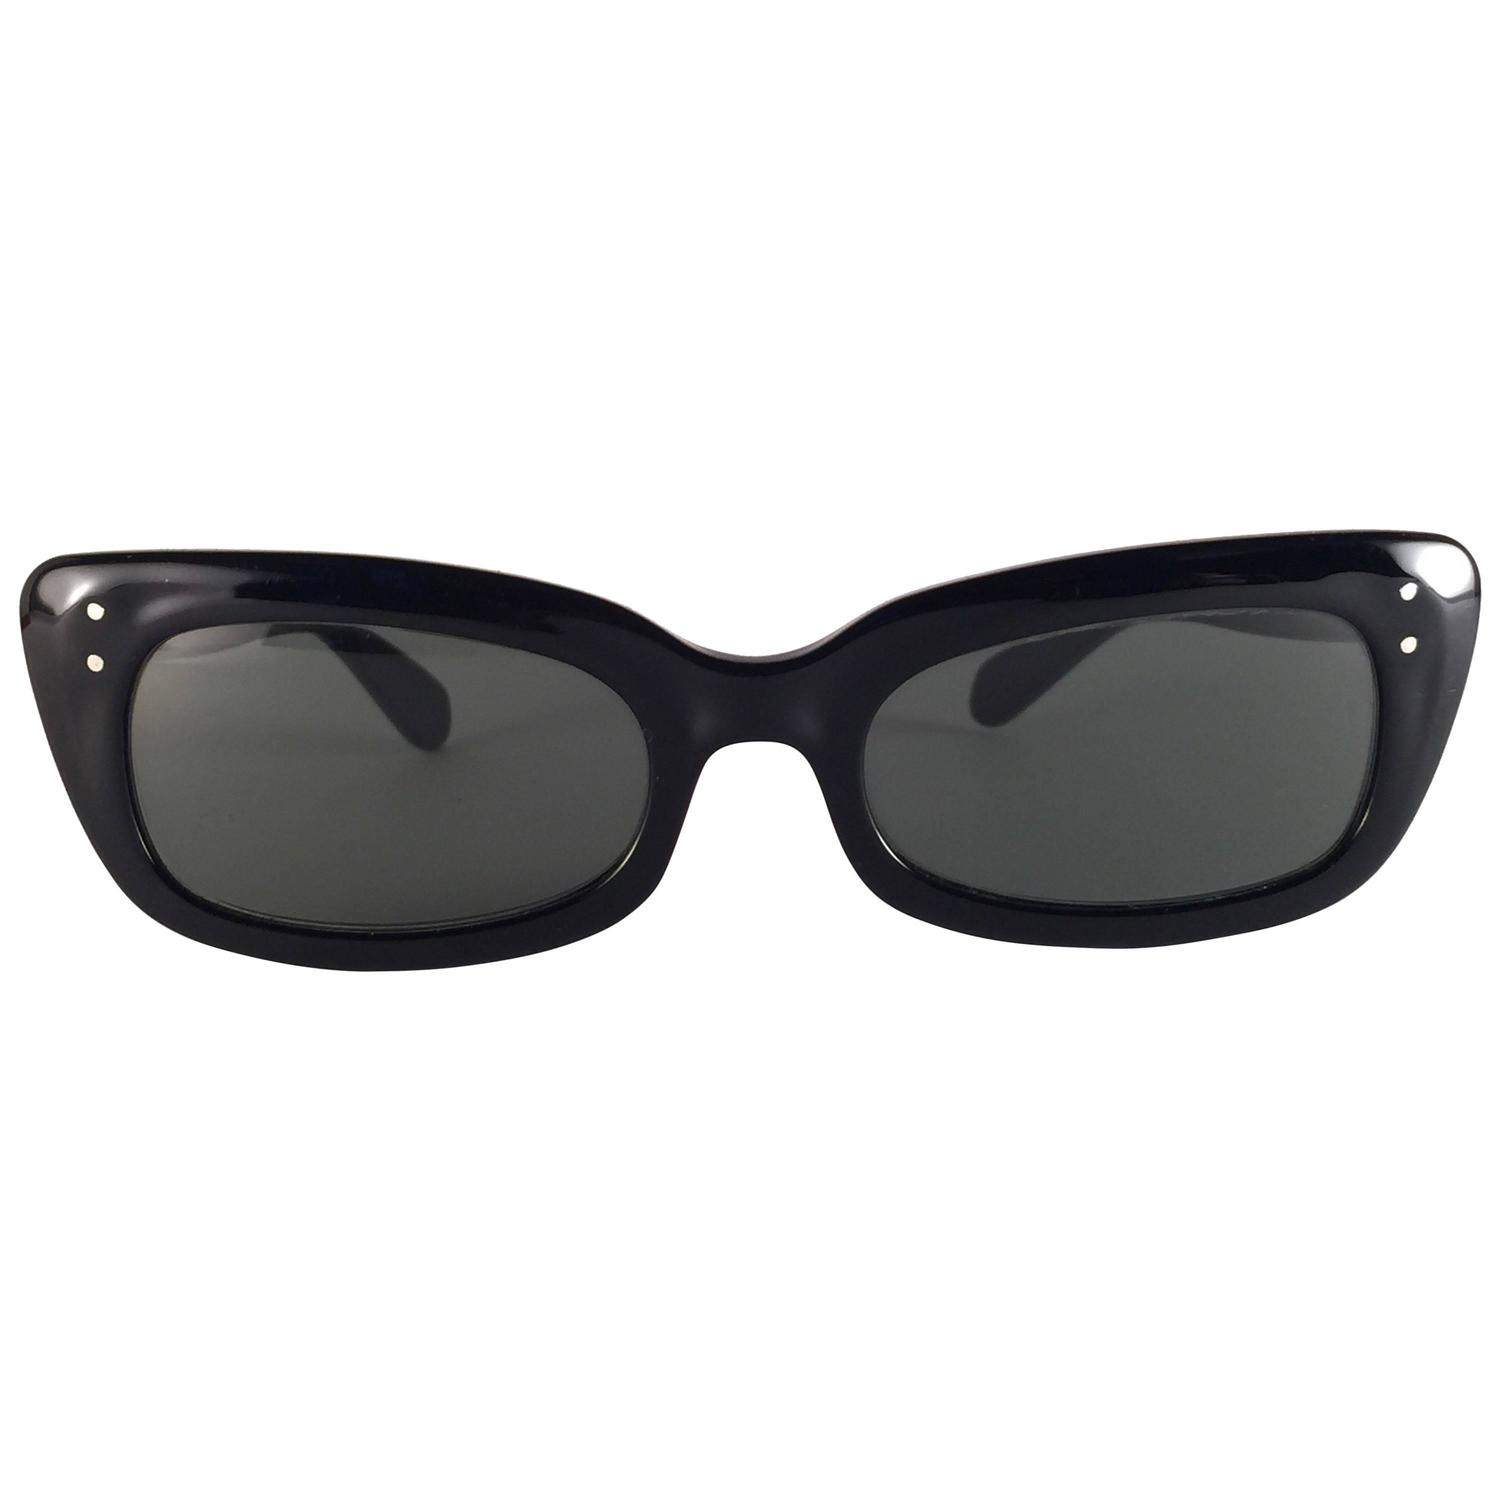 390bf85ba9 1960 Ray Ban Wayfarer « One More Soul